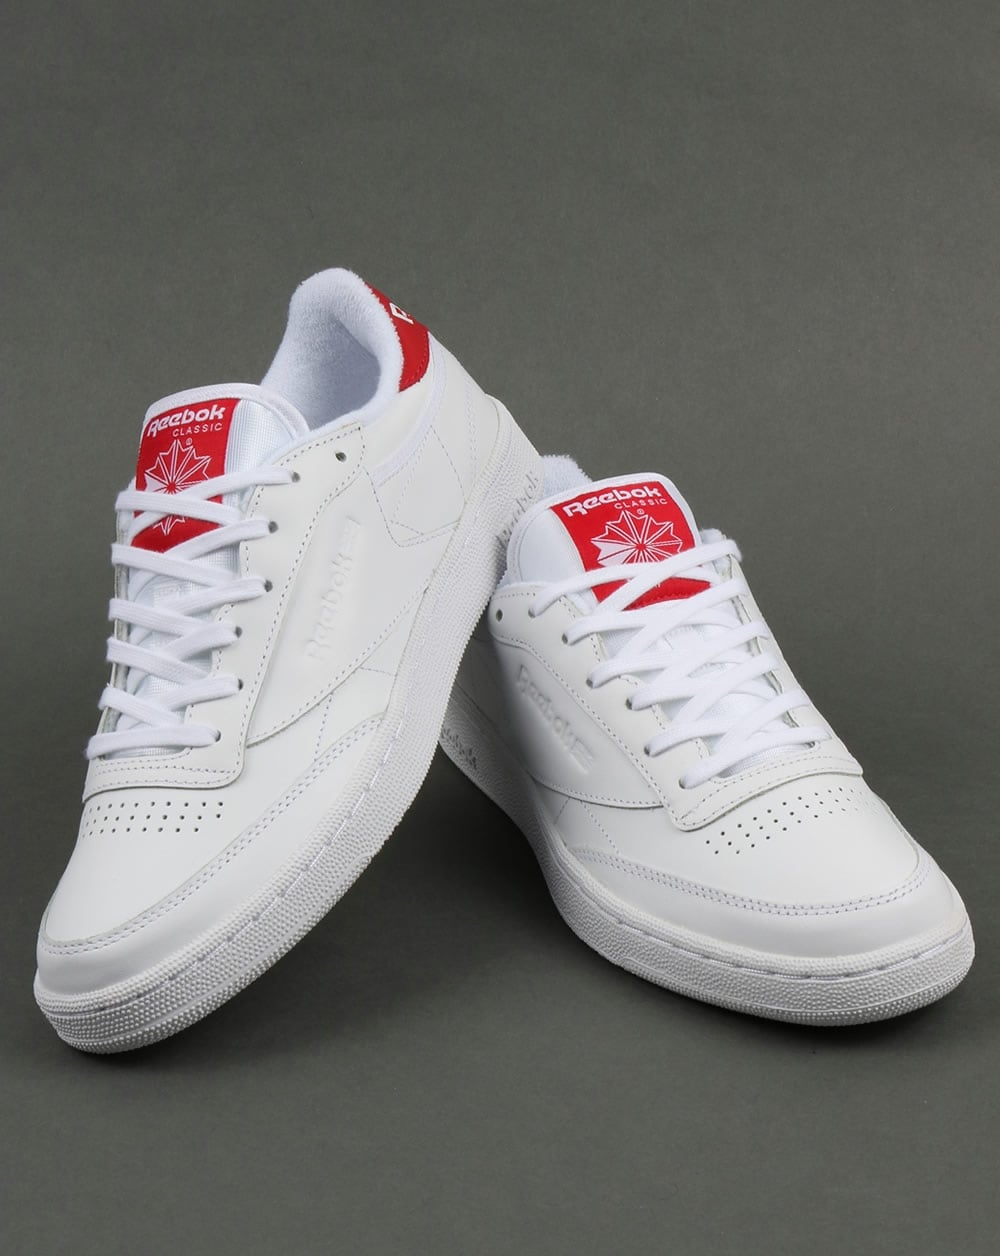 reebok club c 85 el trainers white red shoe retro mens. Black Bedroom Furniture Sets. Home Design Ideas